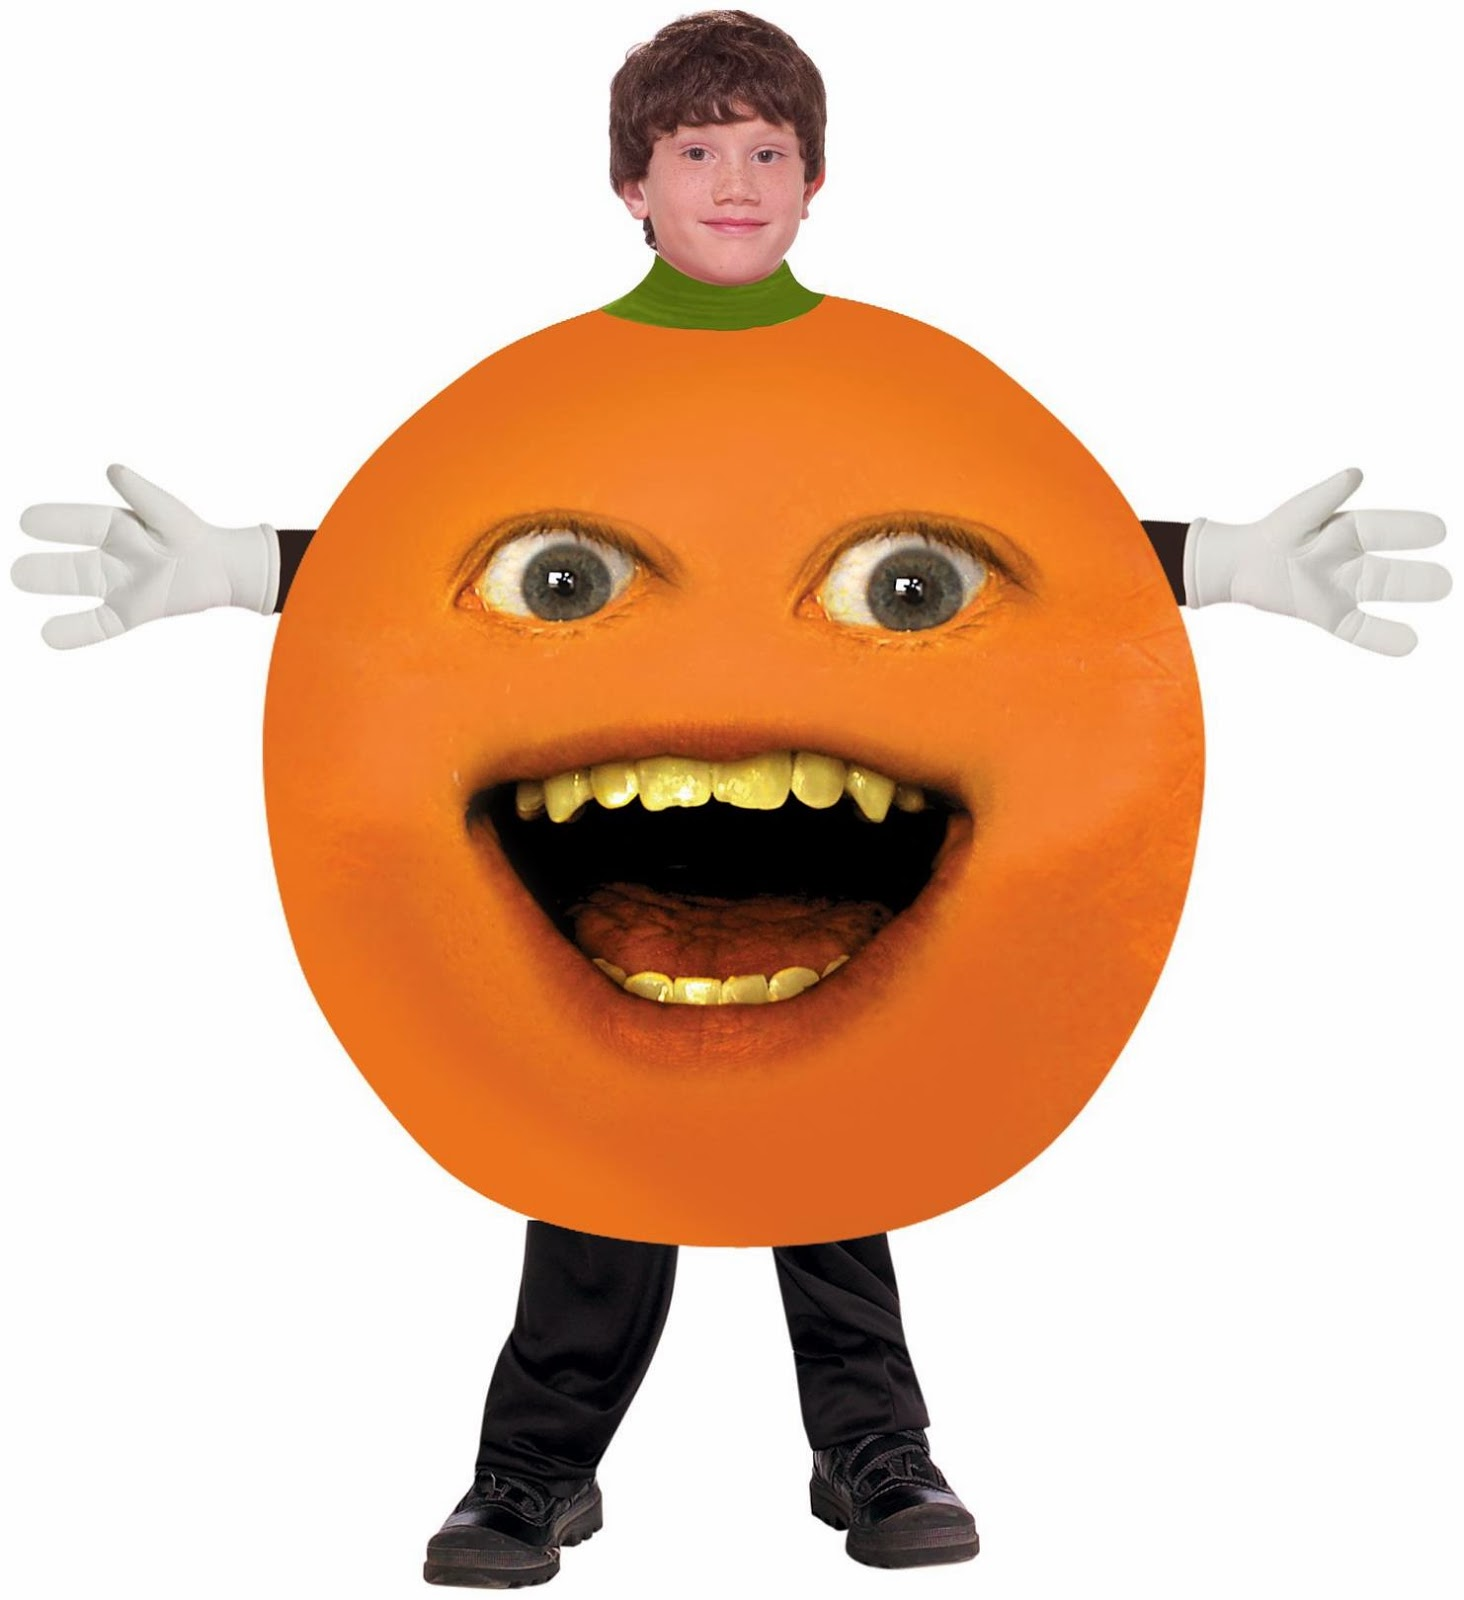 http://www.partybell.com/p-29807-annoying-orange-child-costume.aspx?utm_source=Blog&utm_medium=Social&utm_campaign=International-joke-day-costume-ideas